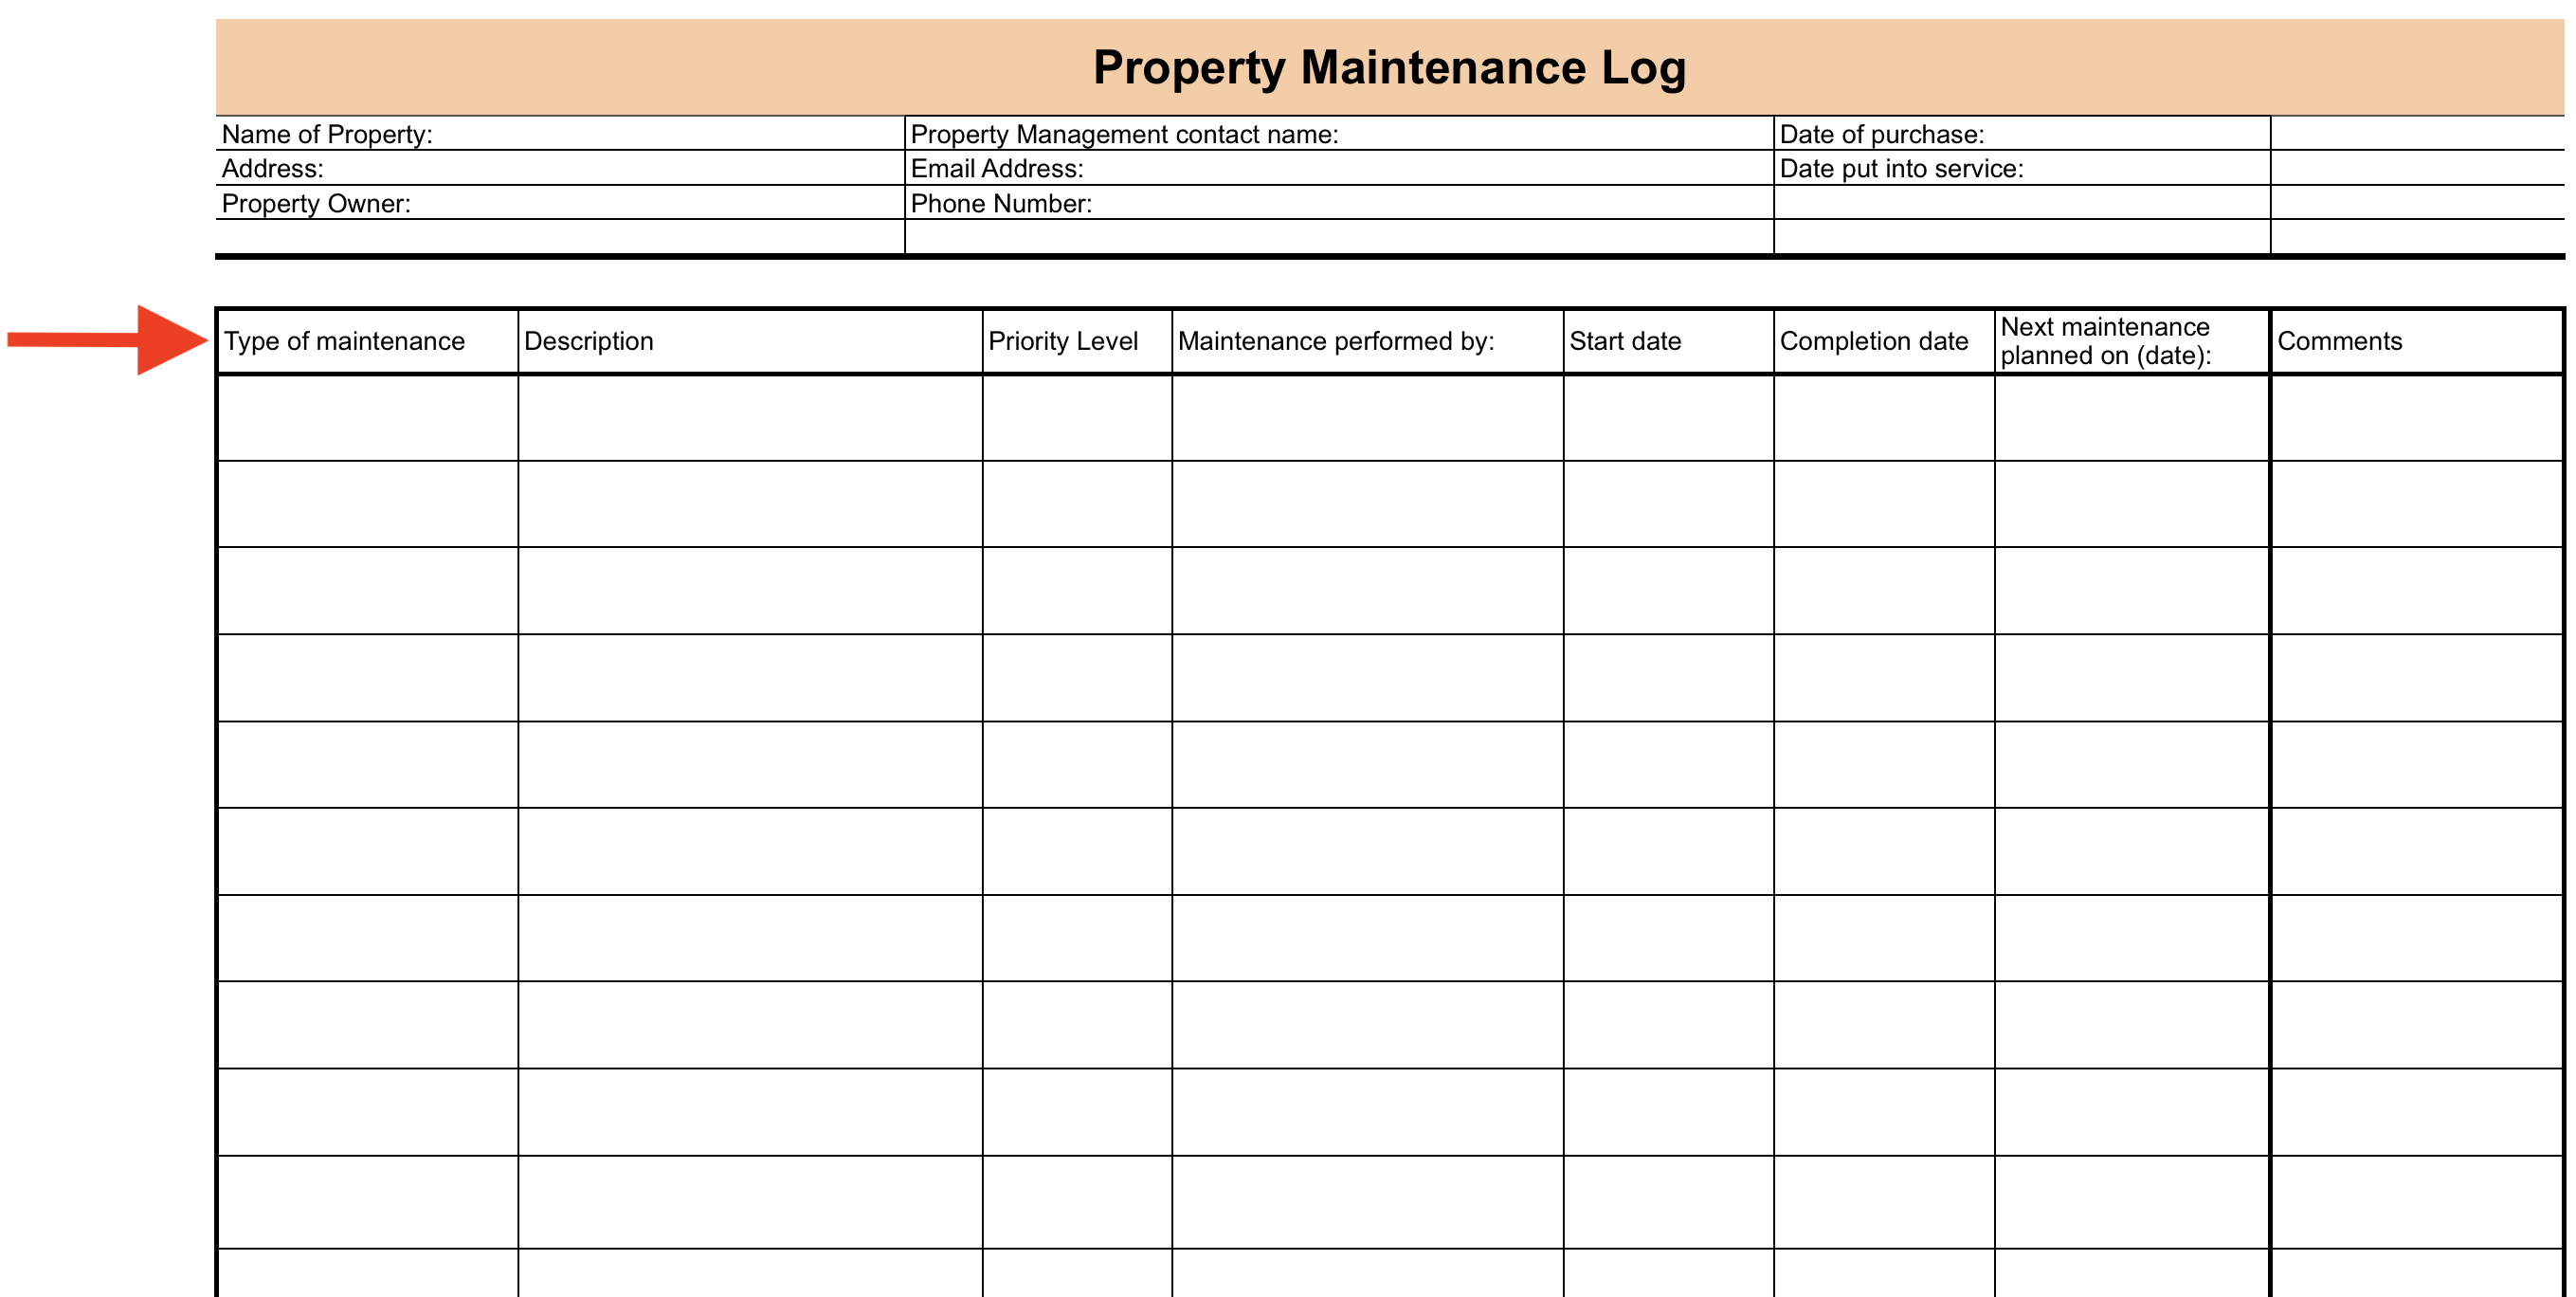 Maintenance Log Setup Checklist Process Street